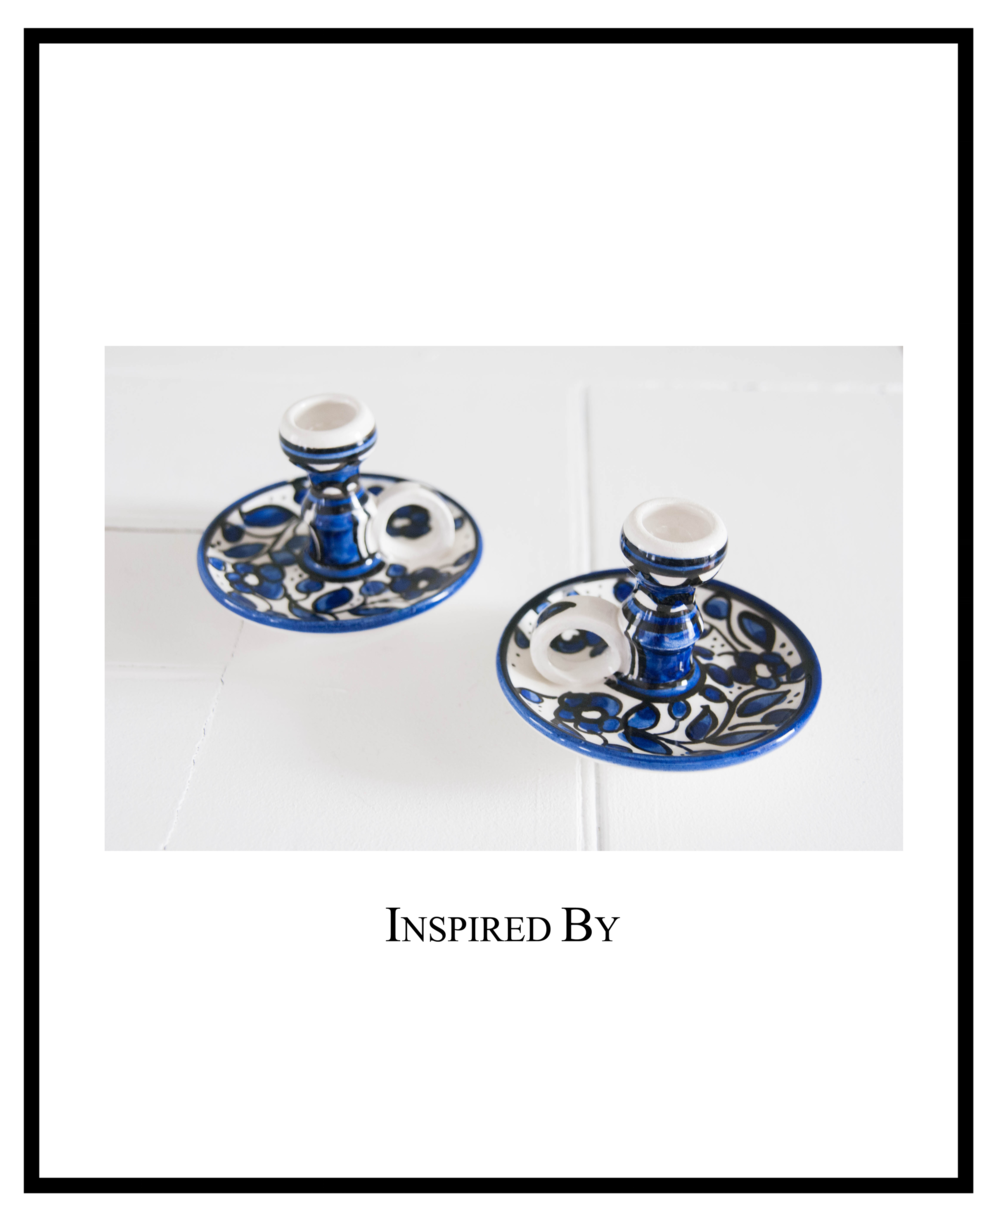 candlestick-holders-inspired-04.png